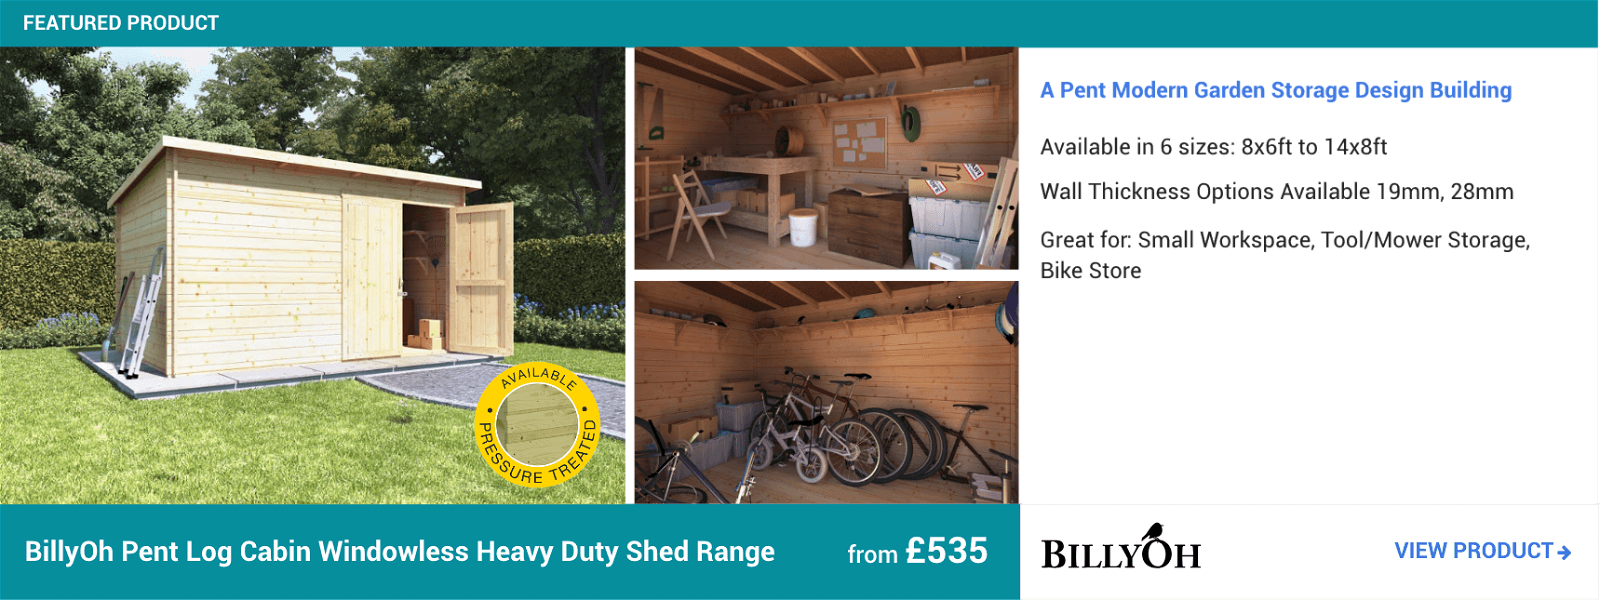 BillyOh Pent Log Cabin Windowless Heavy Duty Shed Range